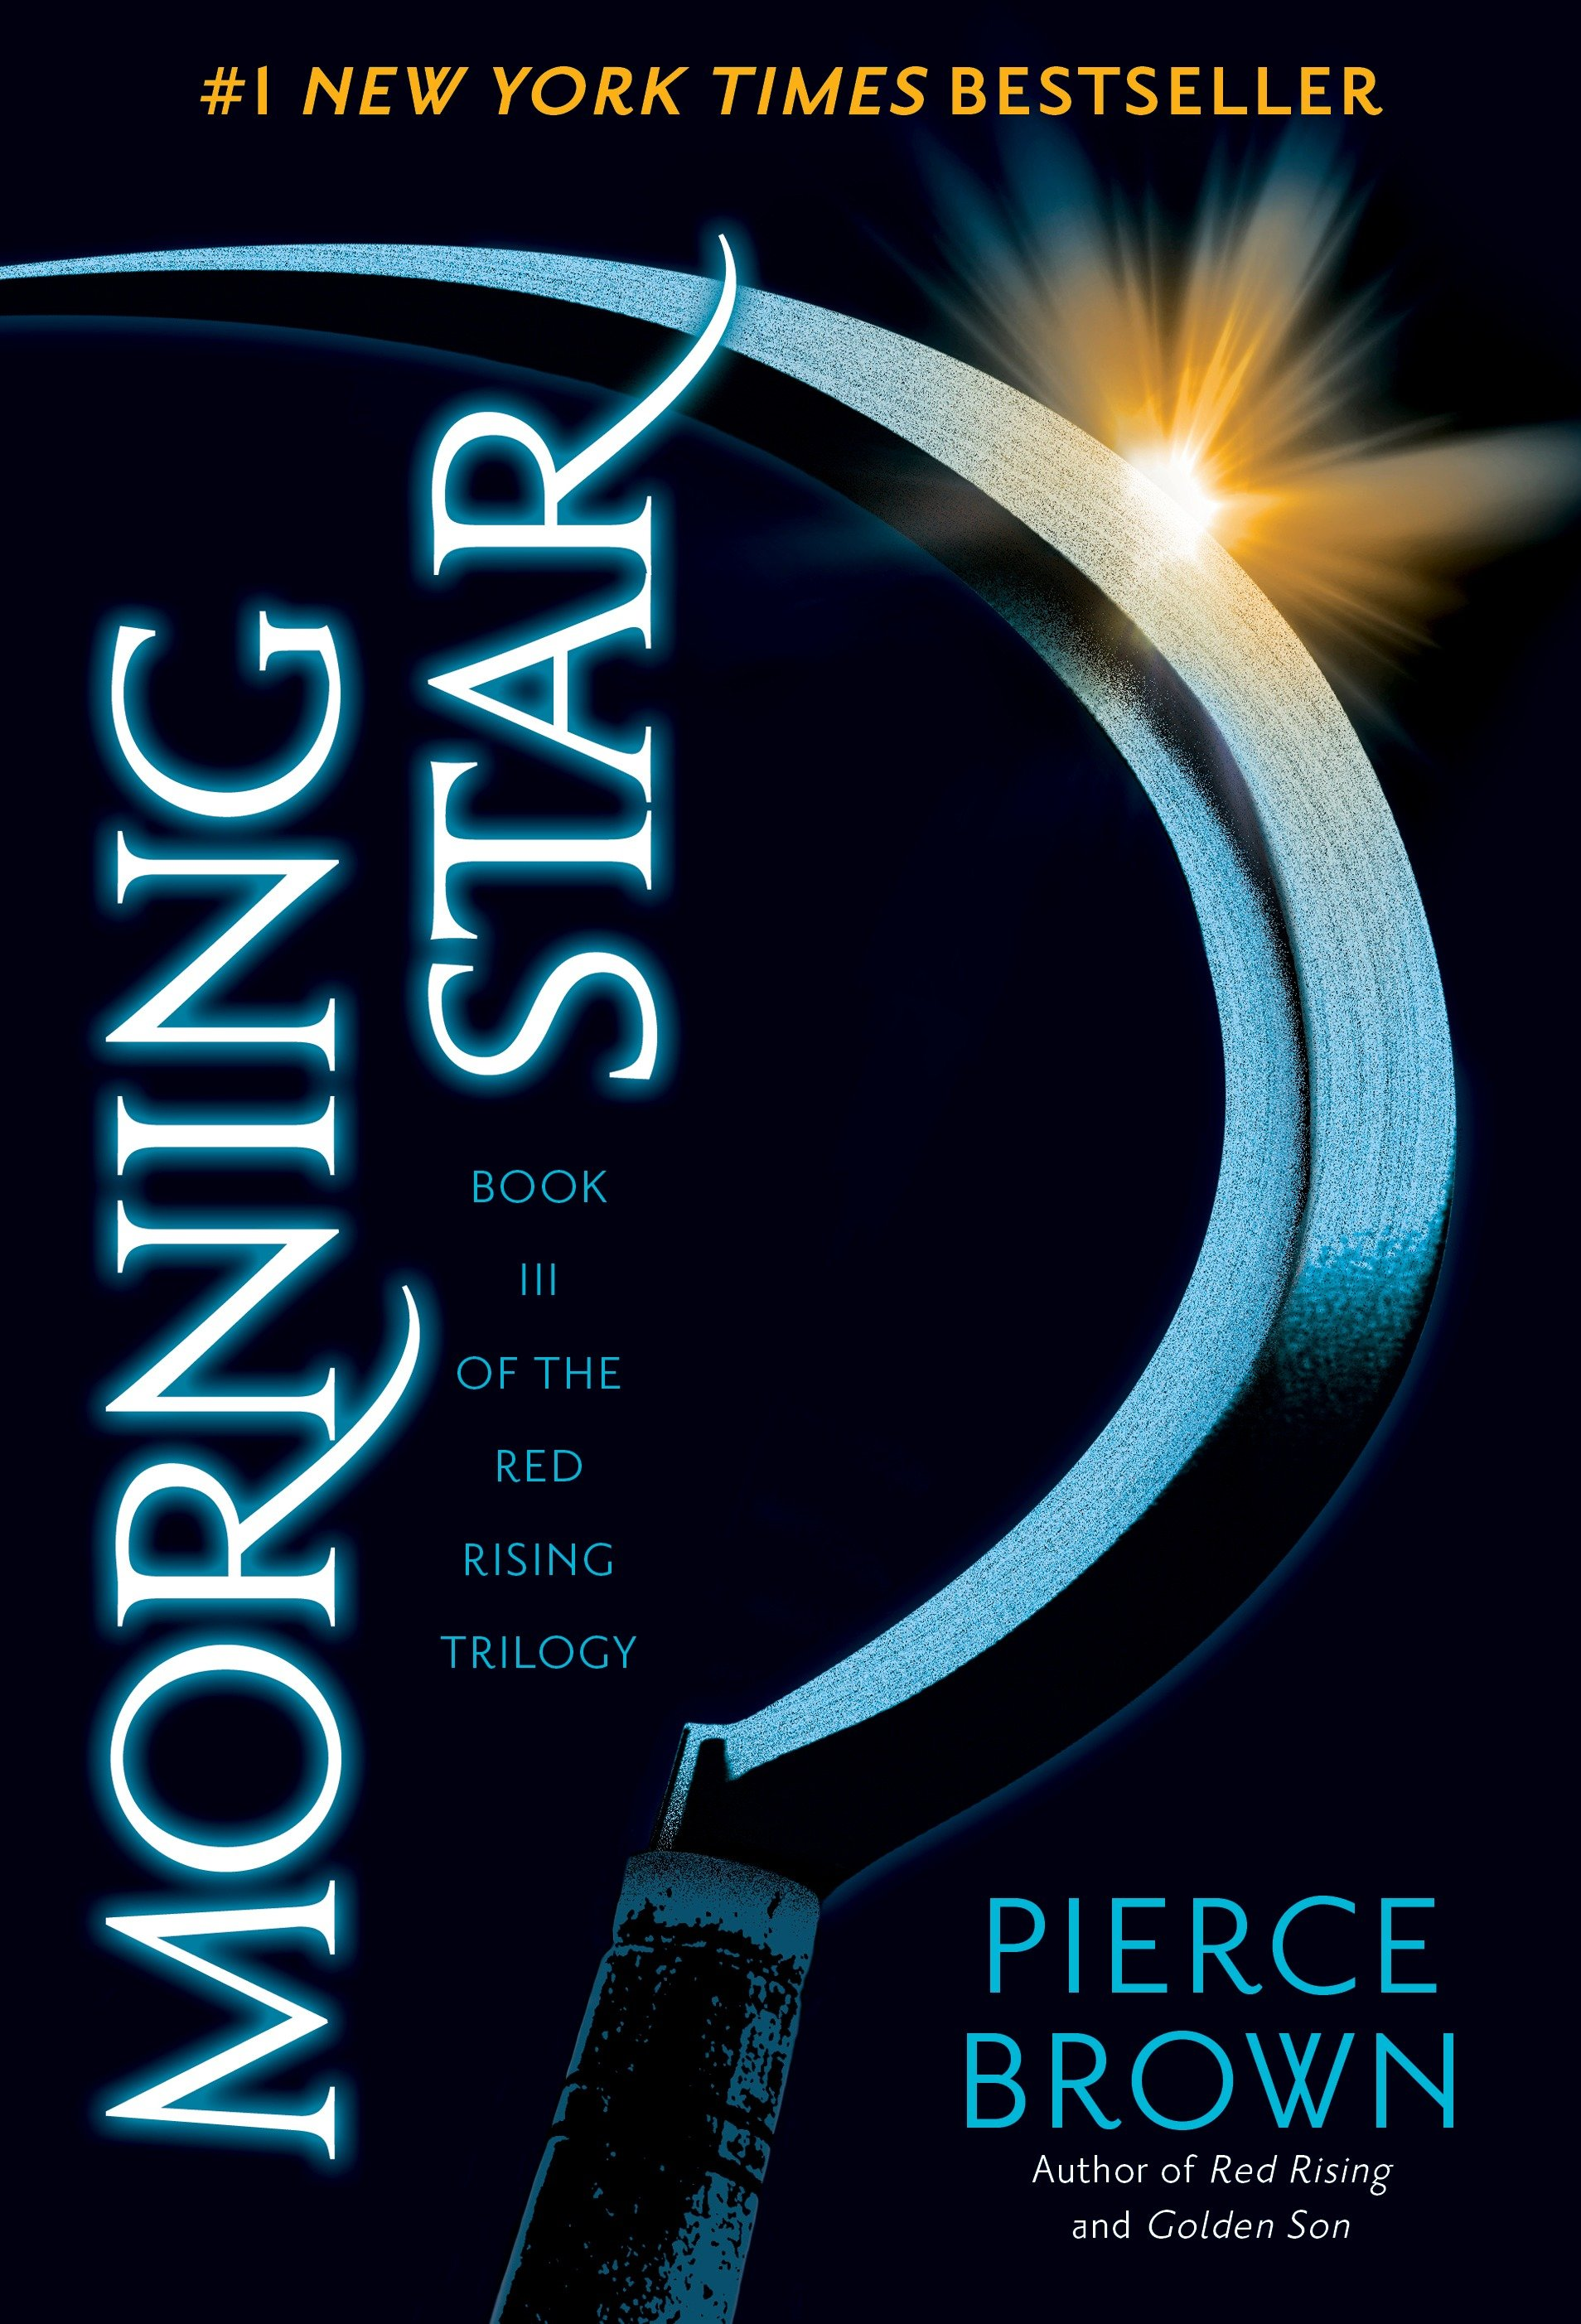 Morning star cover image